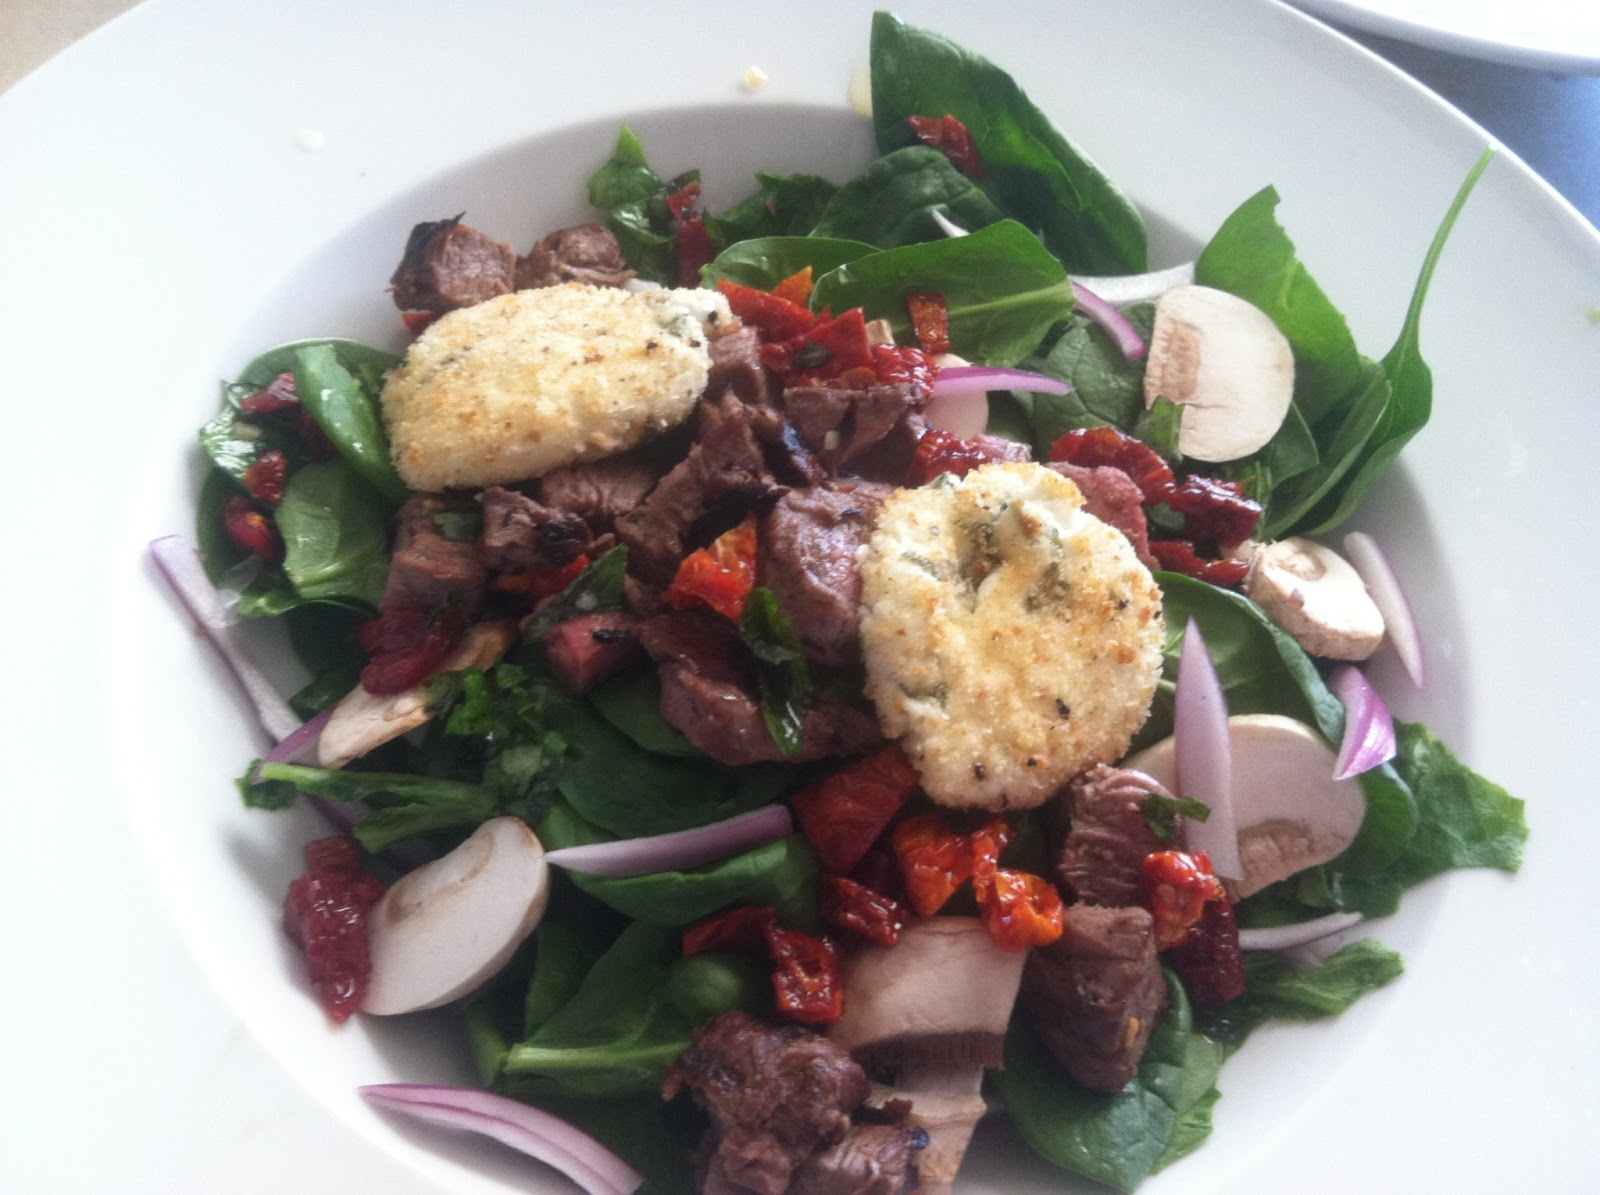 ... and Delicious: Sun-Dried Tomato and Warm Goat Cheese Steak Salad